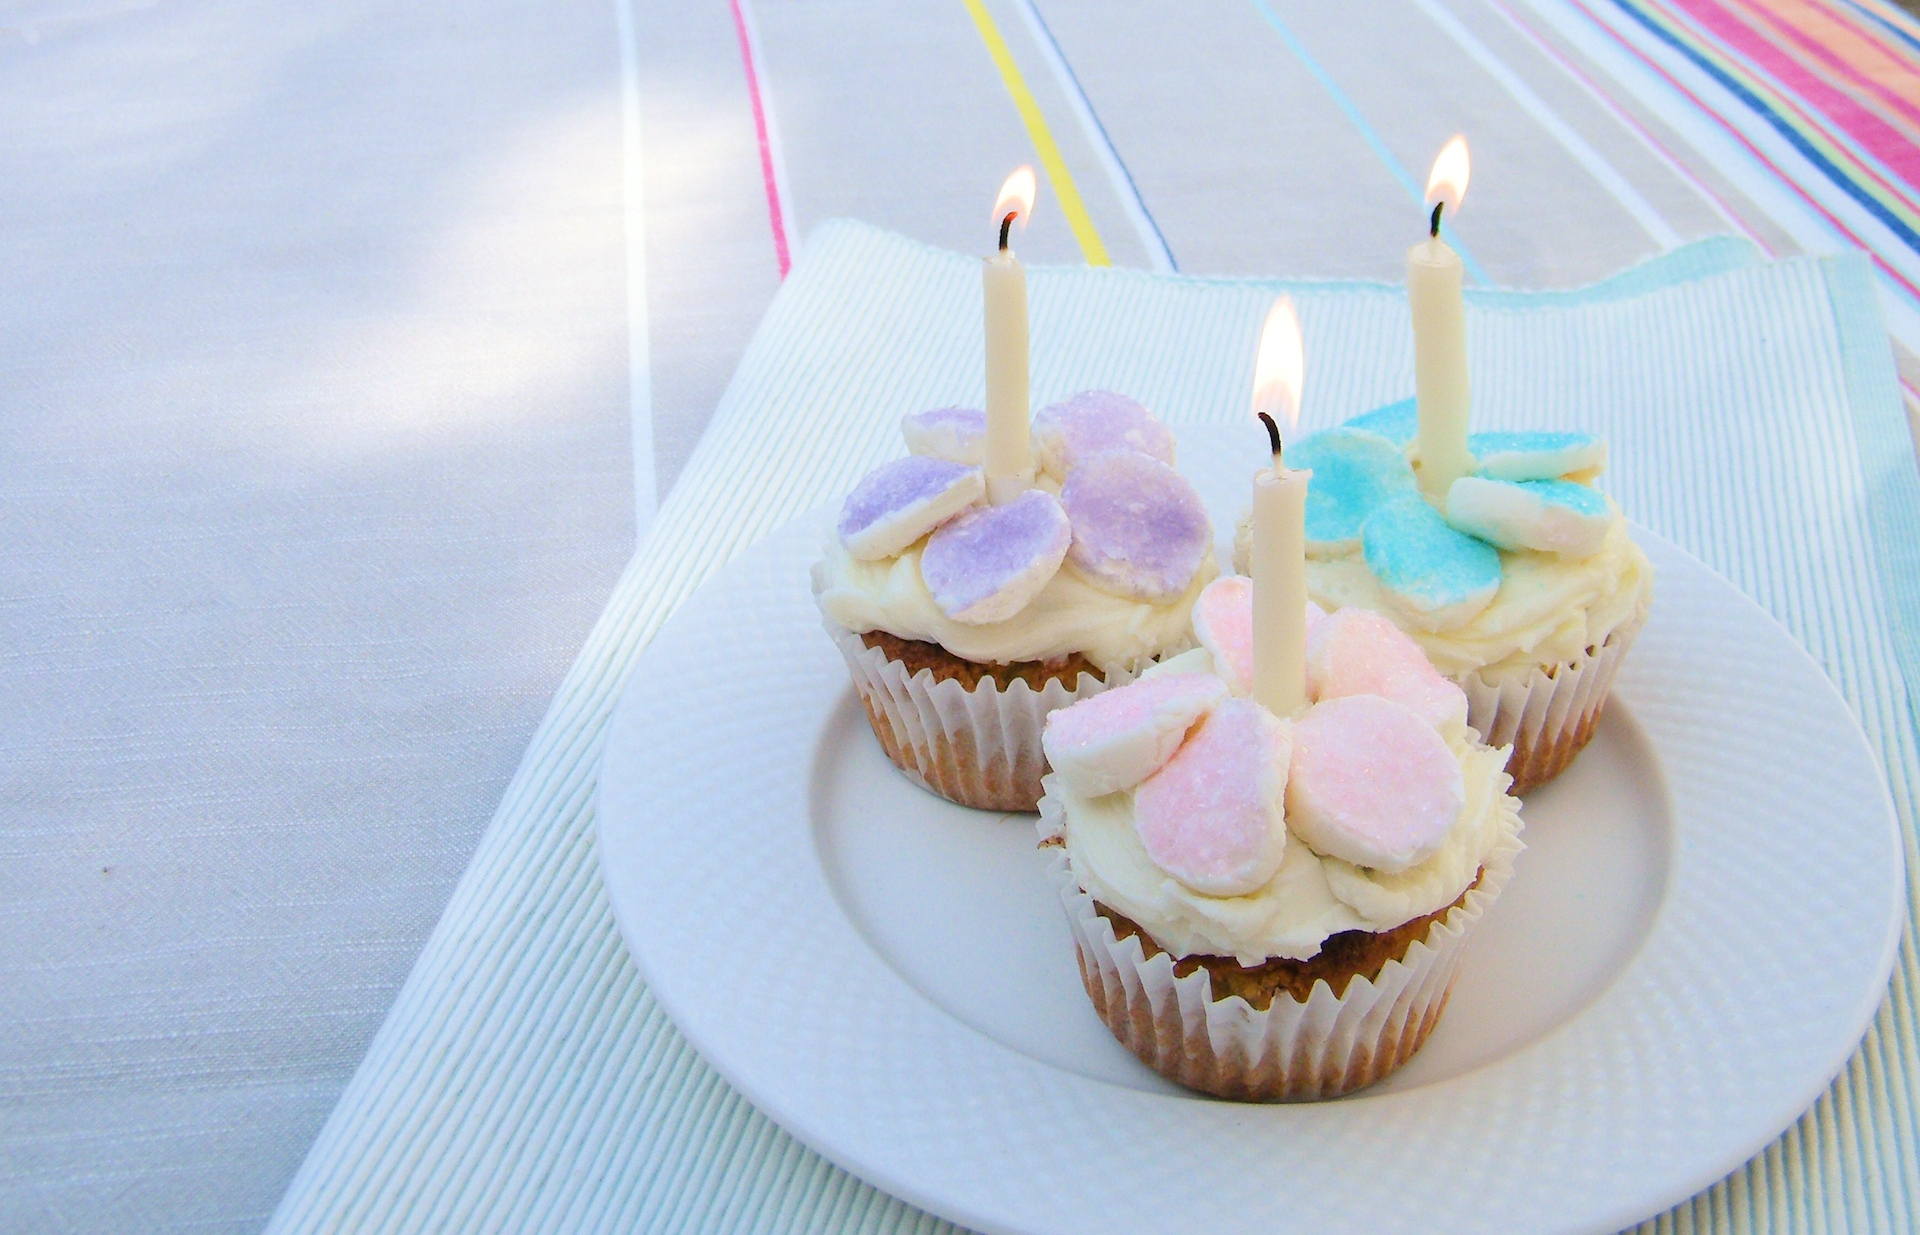 Fairy cakes with white beeswax candles